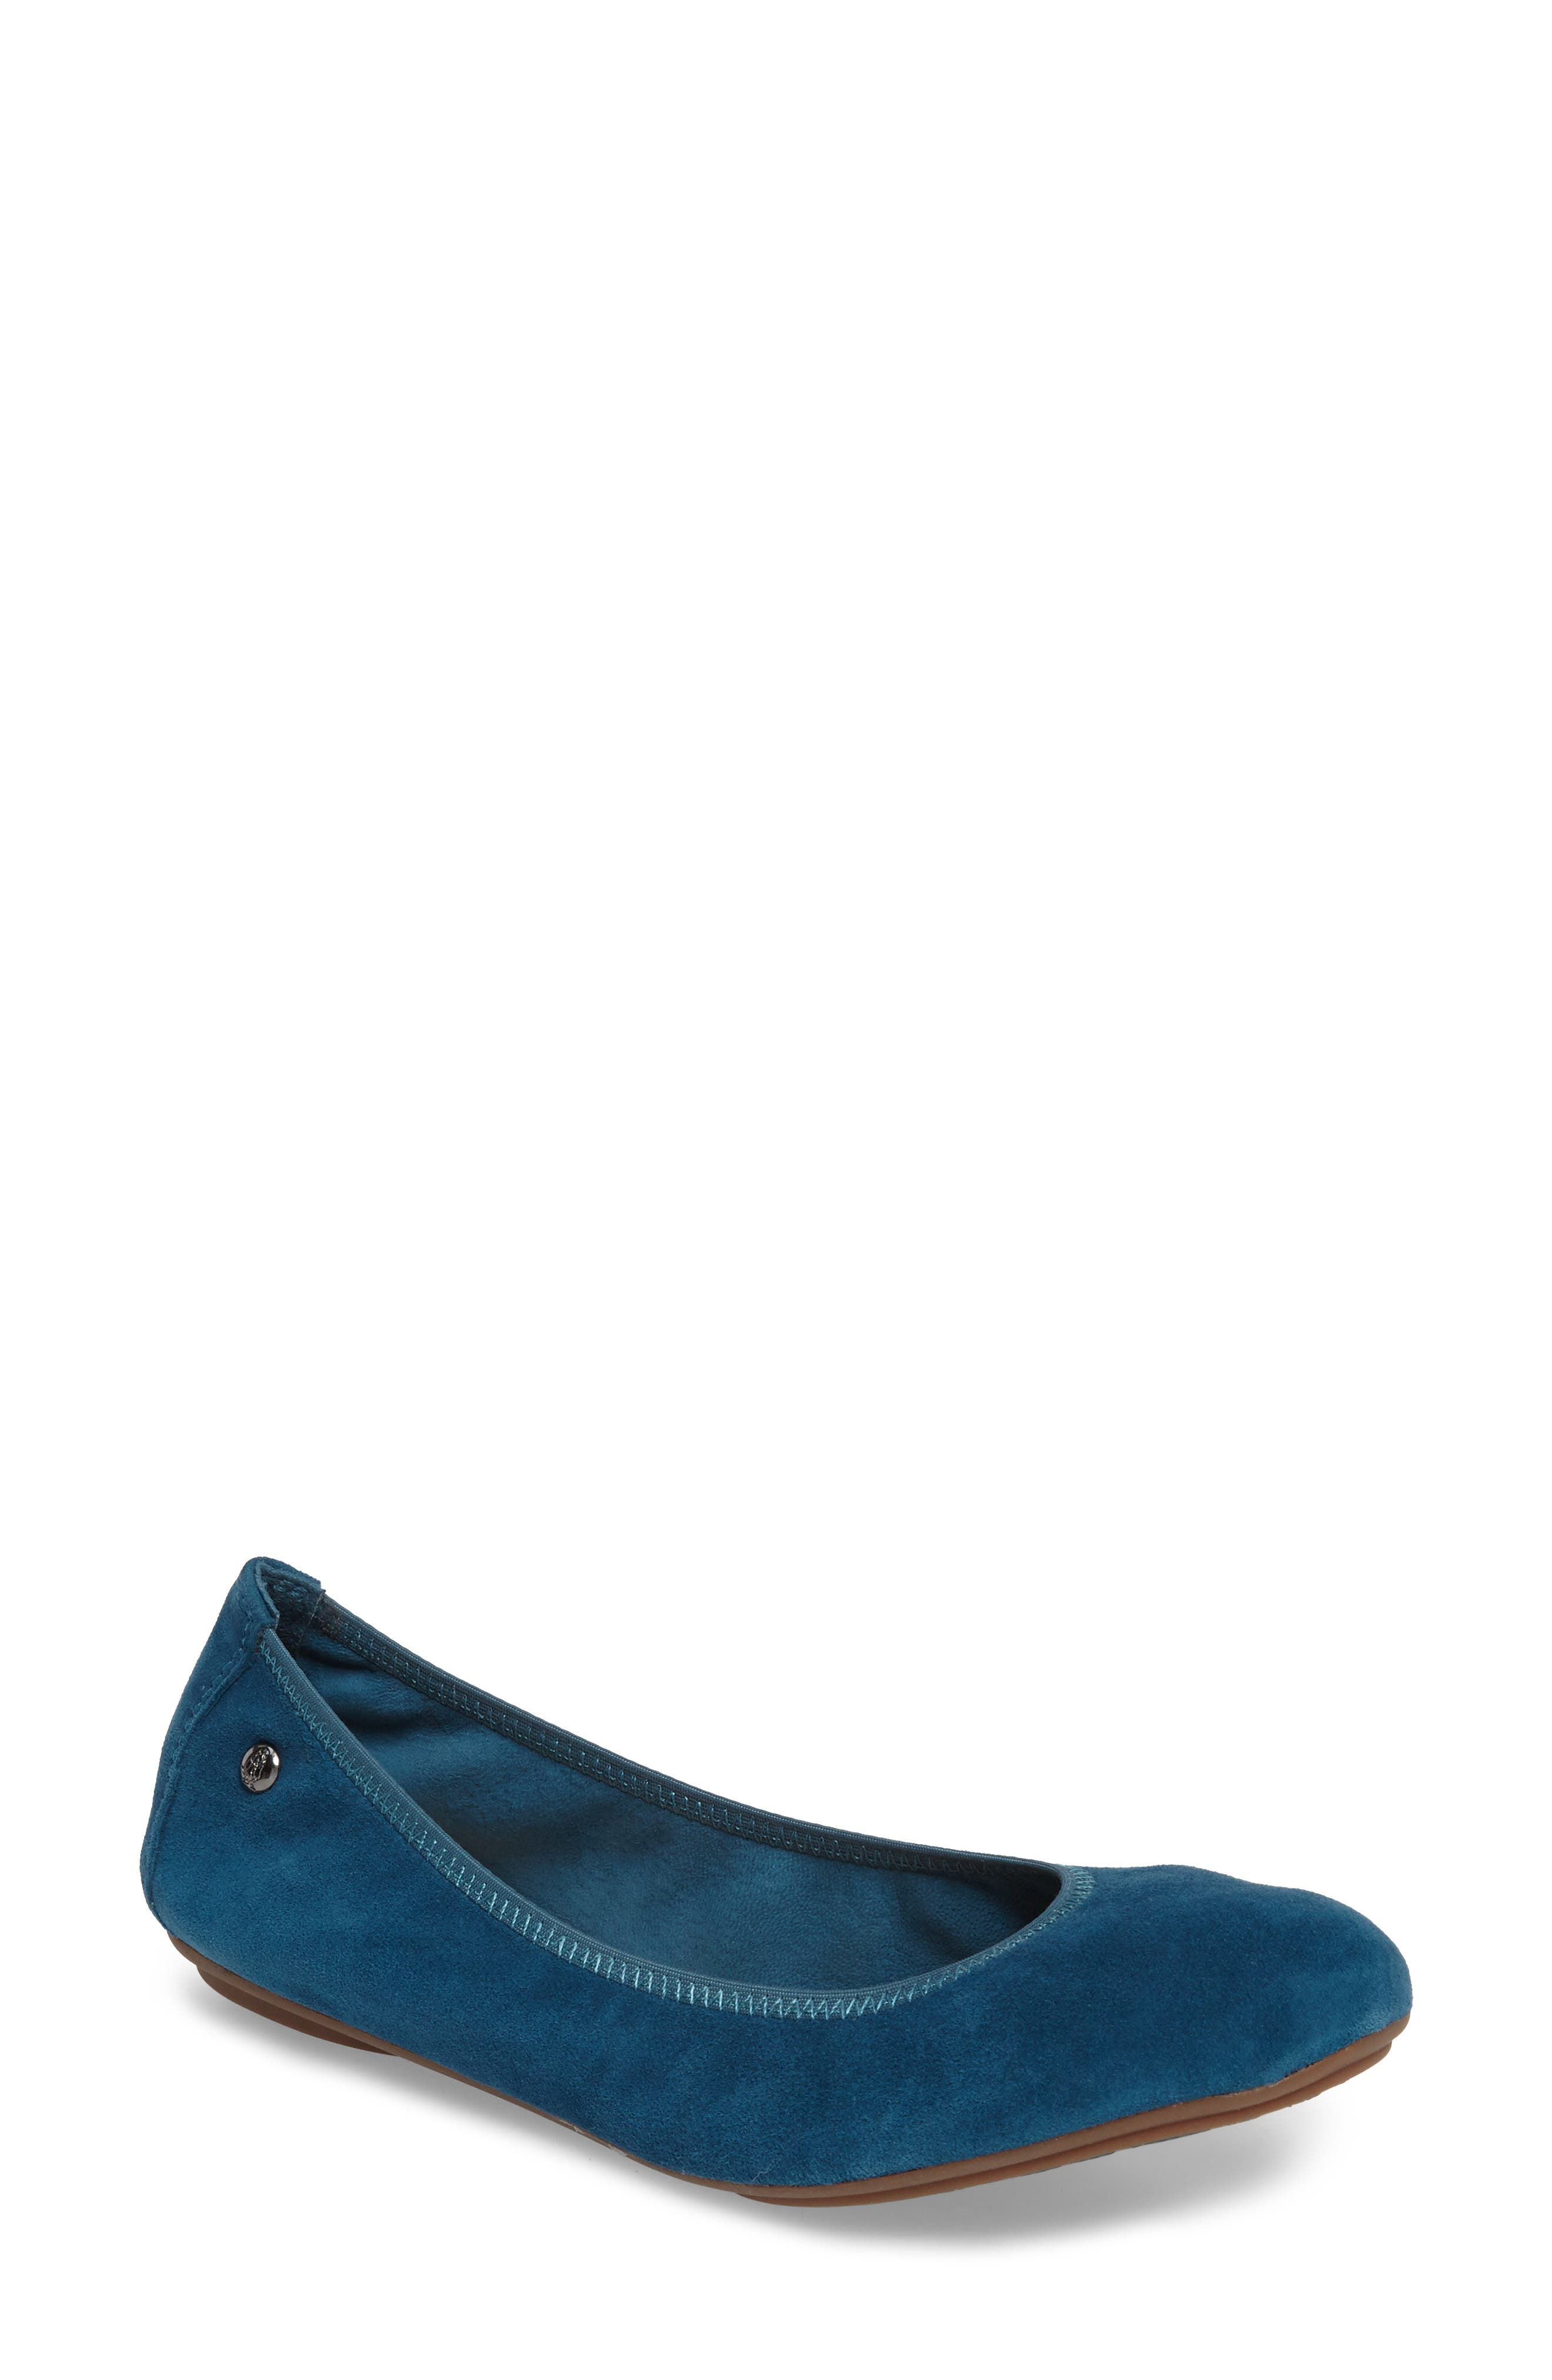 Alternate Image 1 Selected - Hush Puppies® 'Chaste' Ballet Flat (Women)